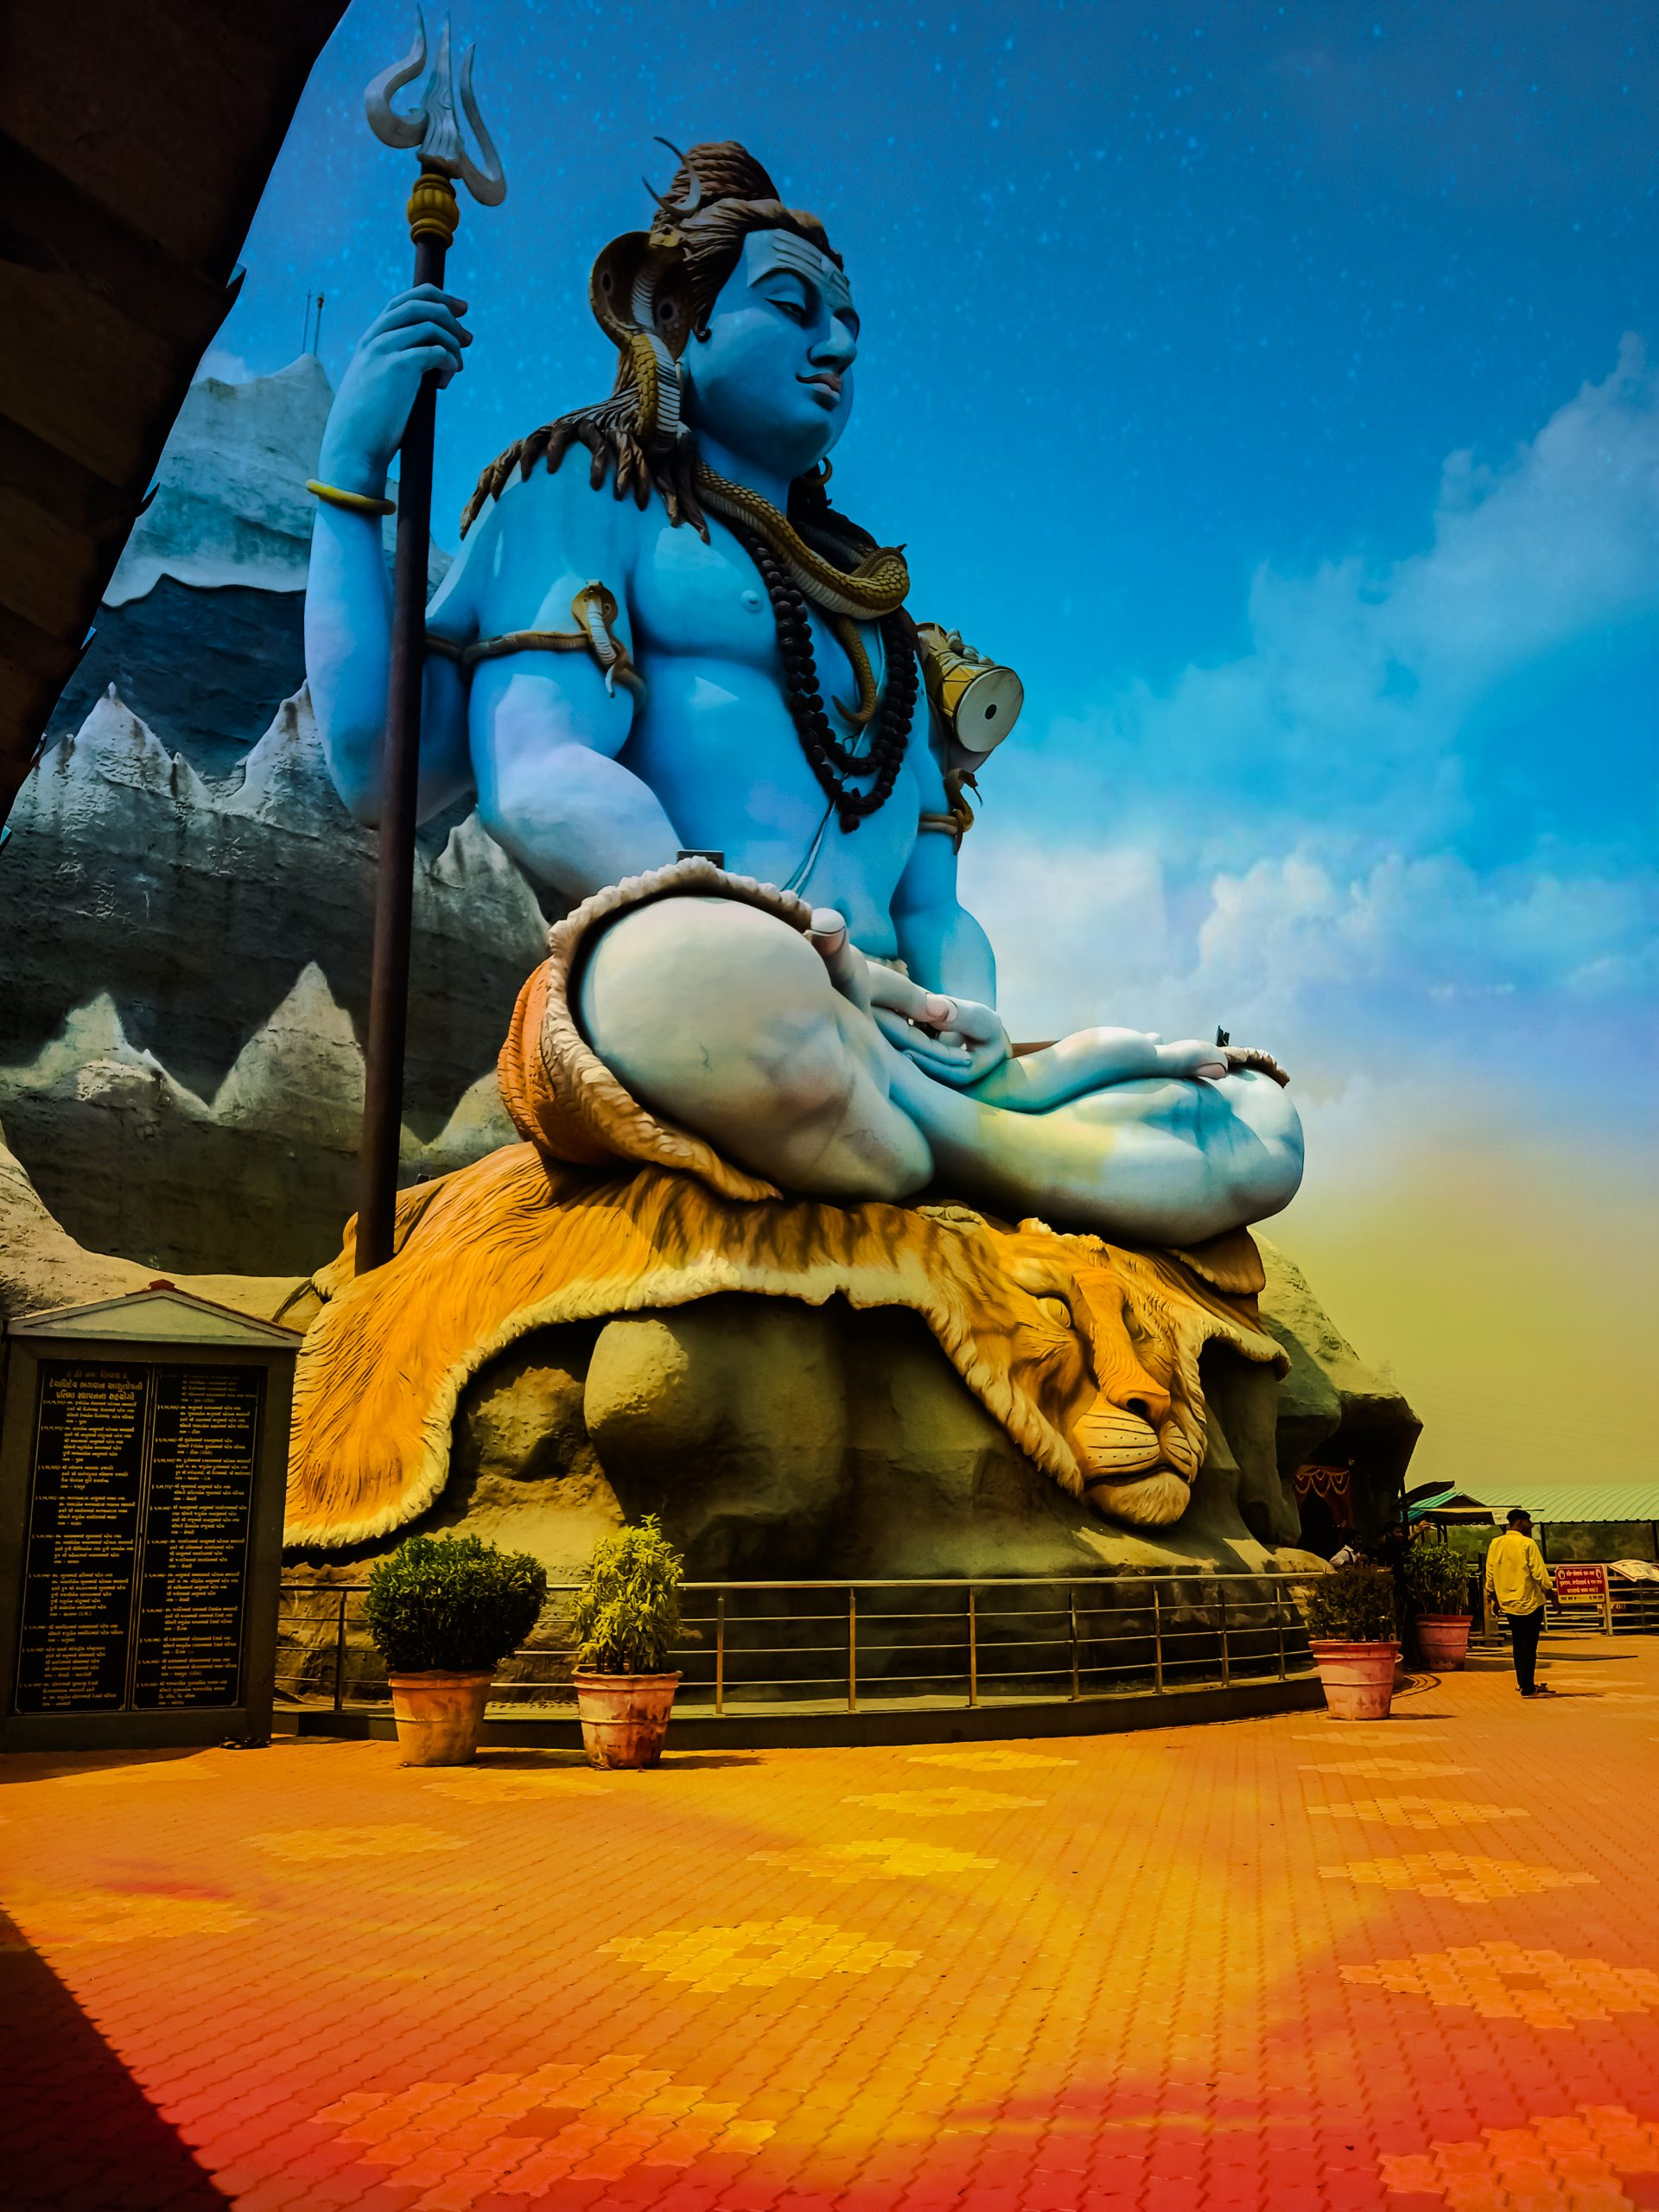 A giant statue of lord Shiva